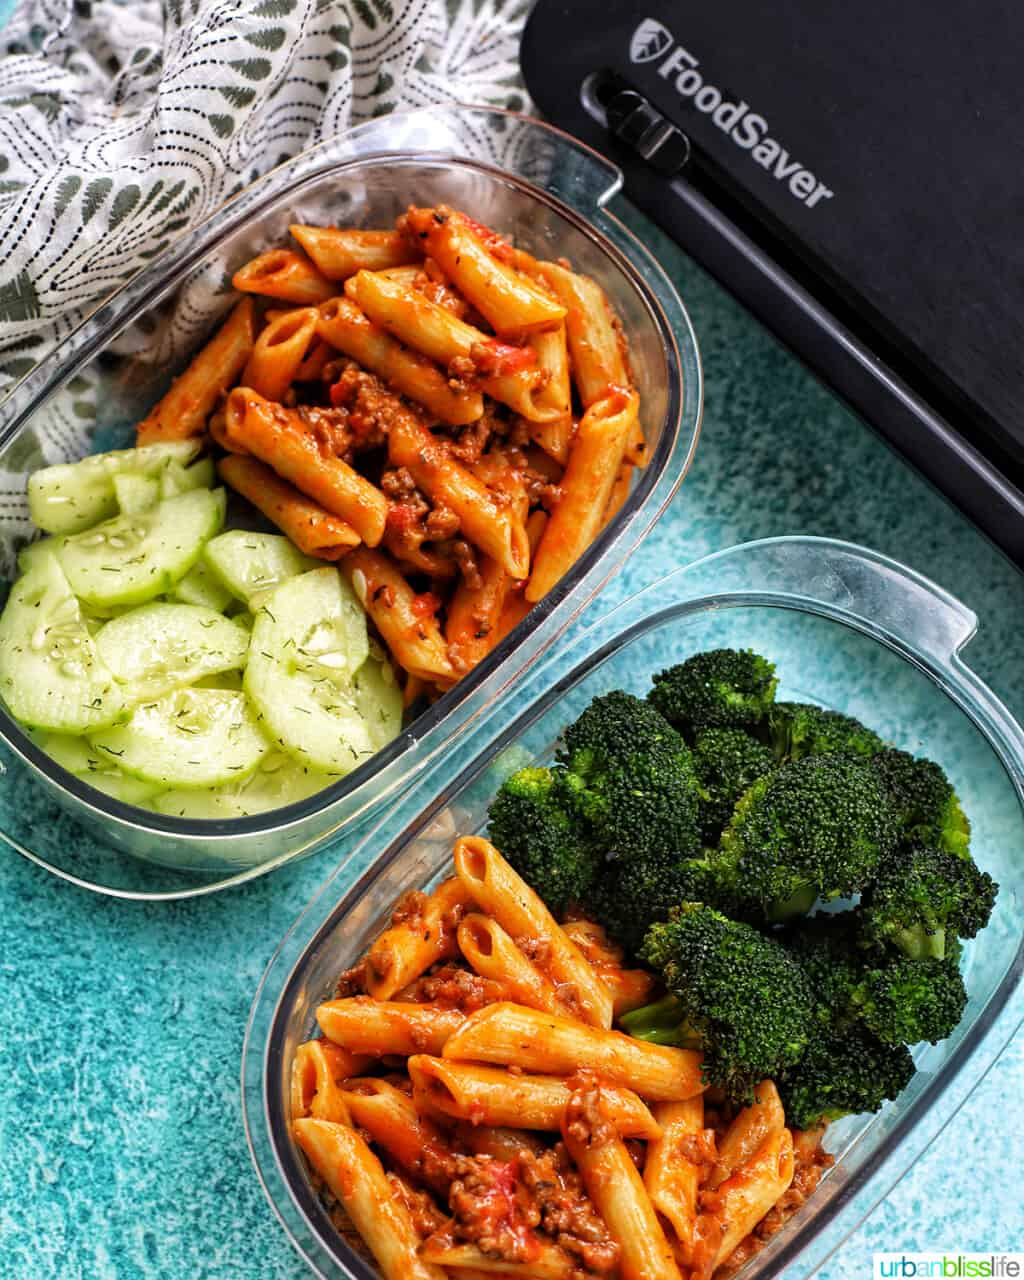 dairy-free creamy ground beef pasta in FoodSaver containers with veggies